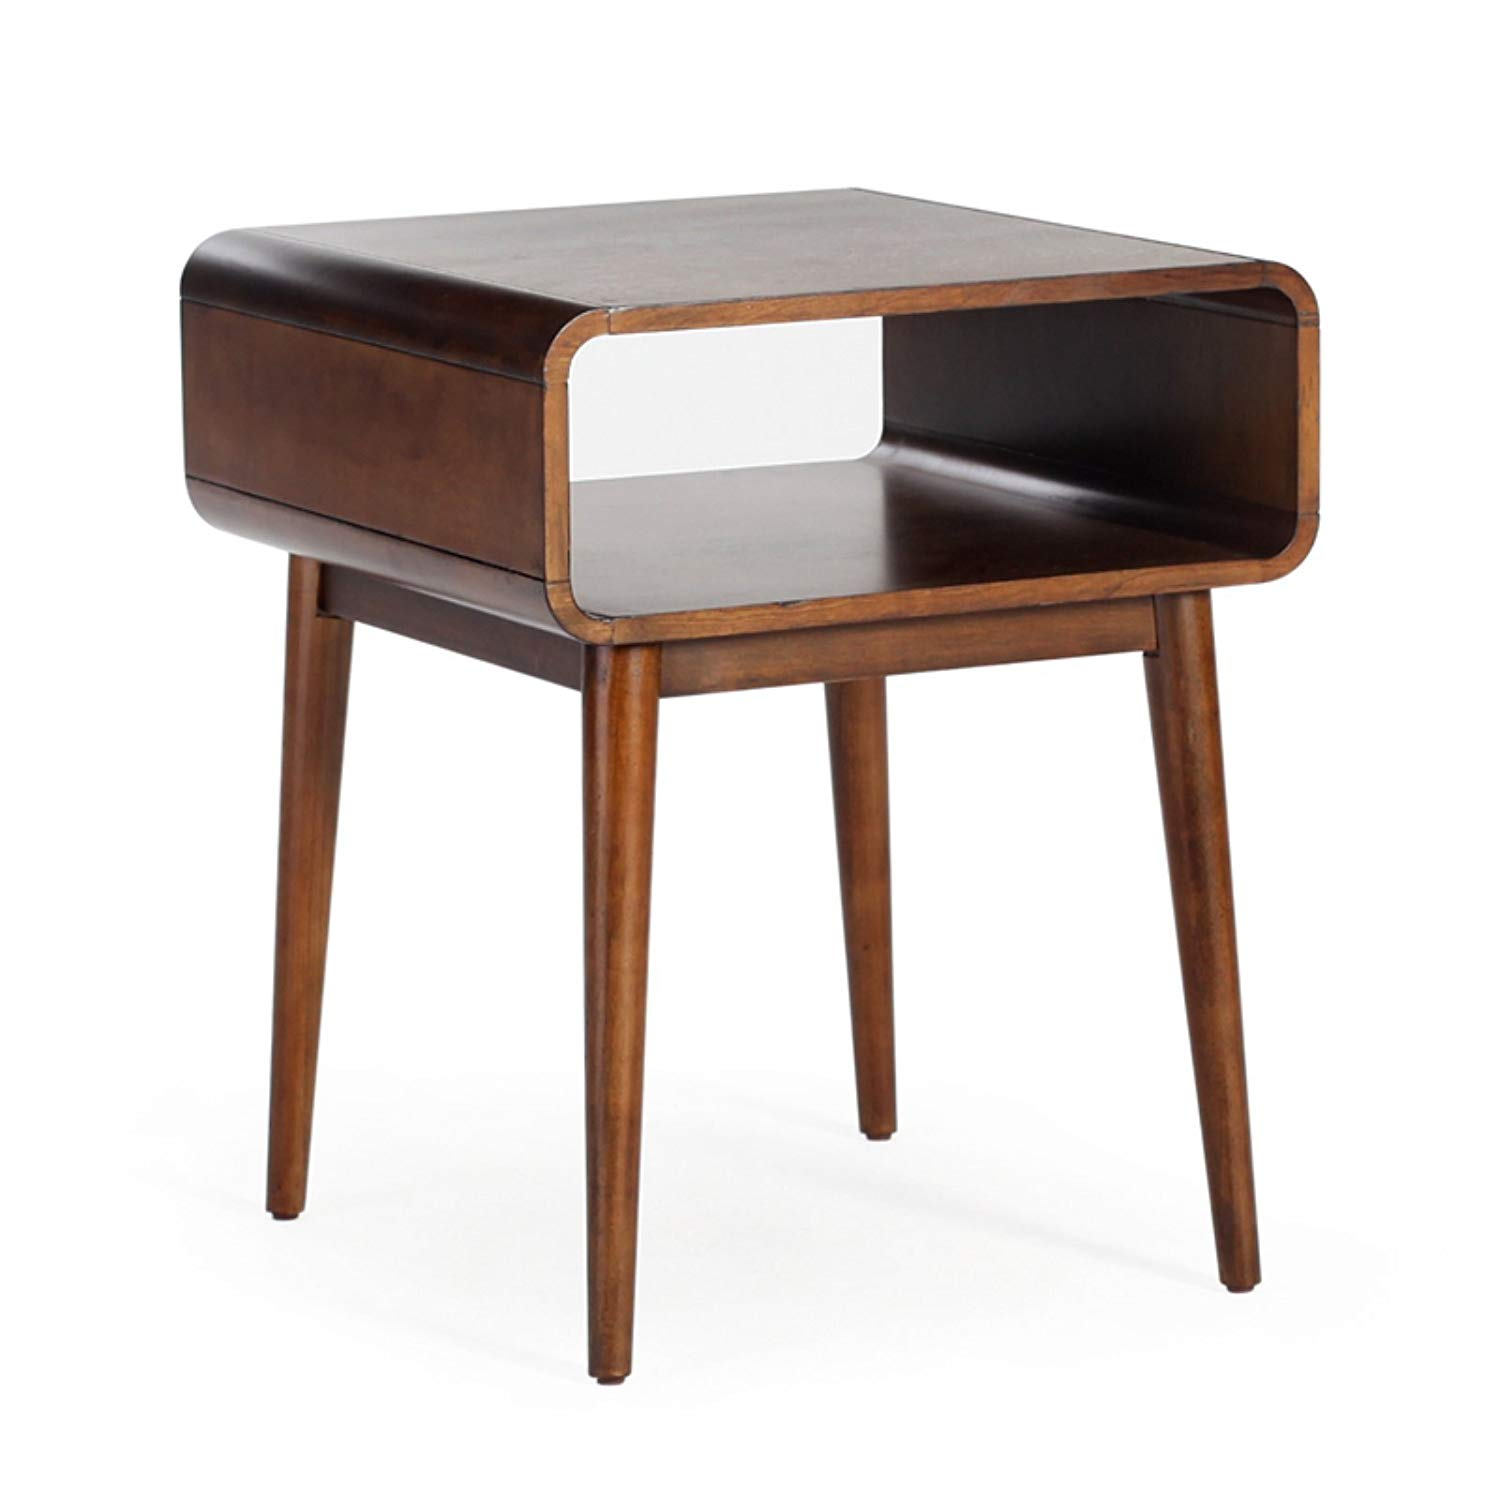 belham living carter mid century modern side table zebra accent kitchen dining pier one room tables glass agate cherry wood dinner mirrored lingerie chest piece small iron white